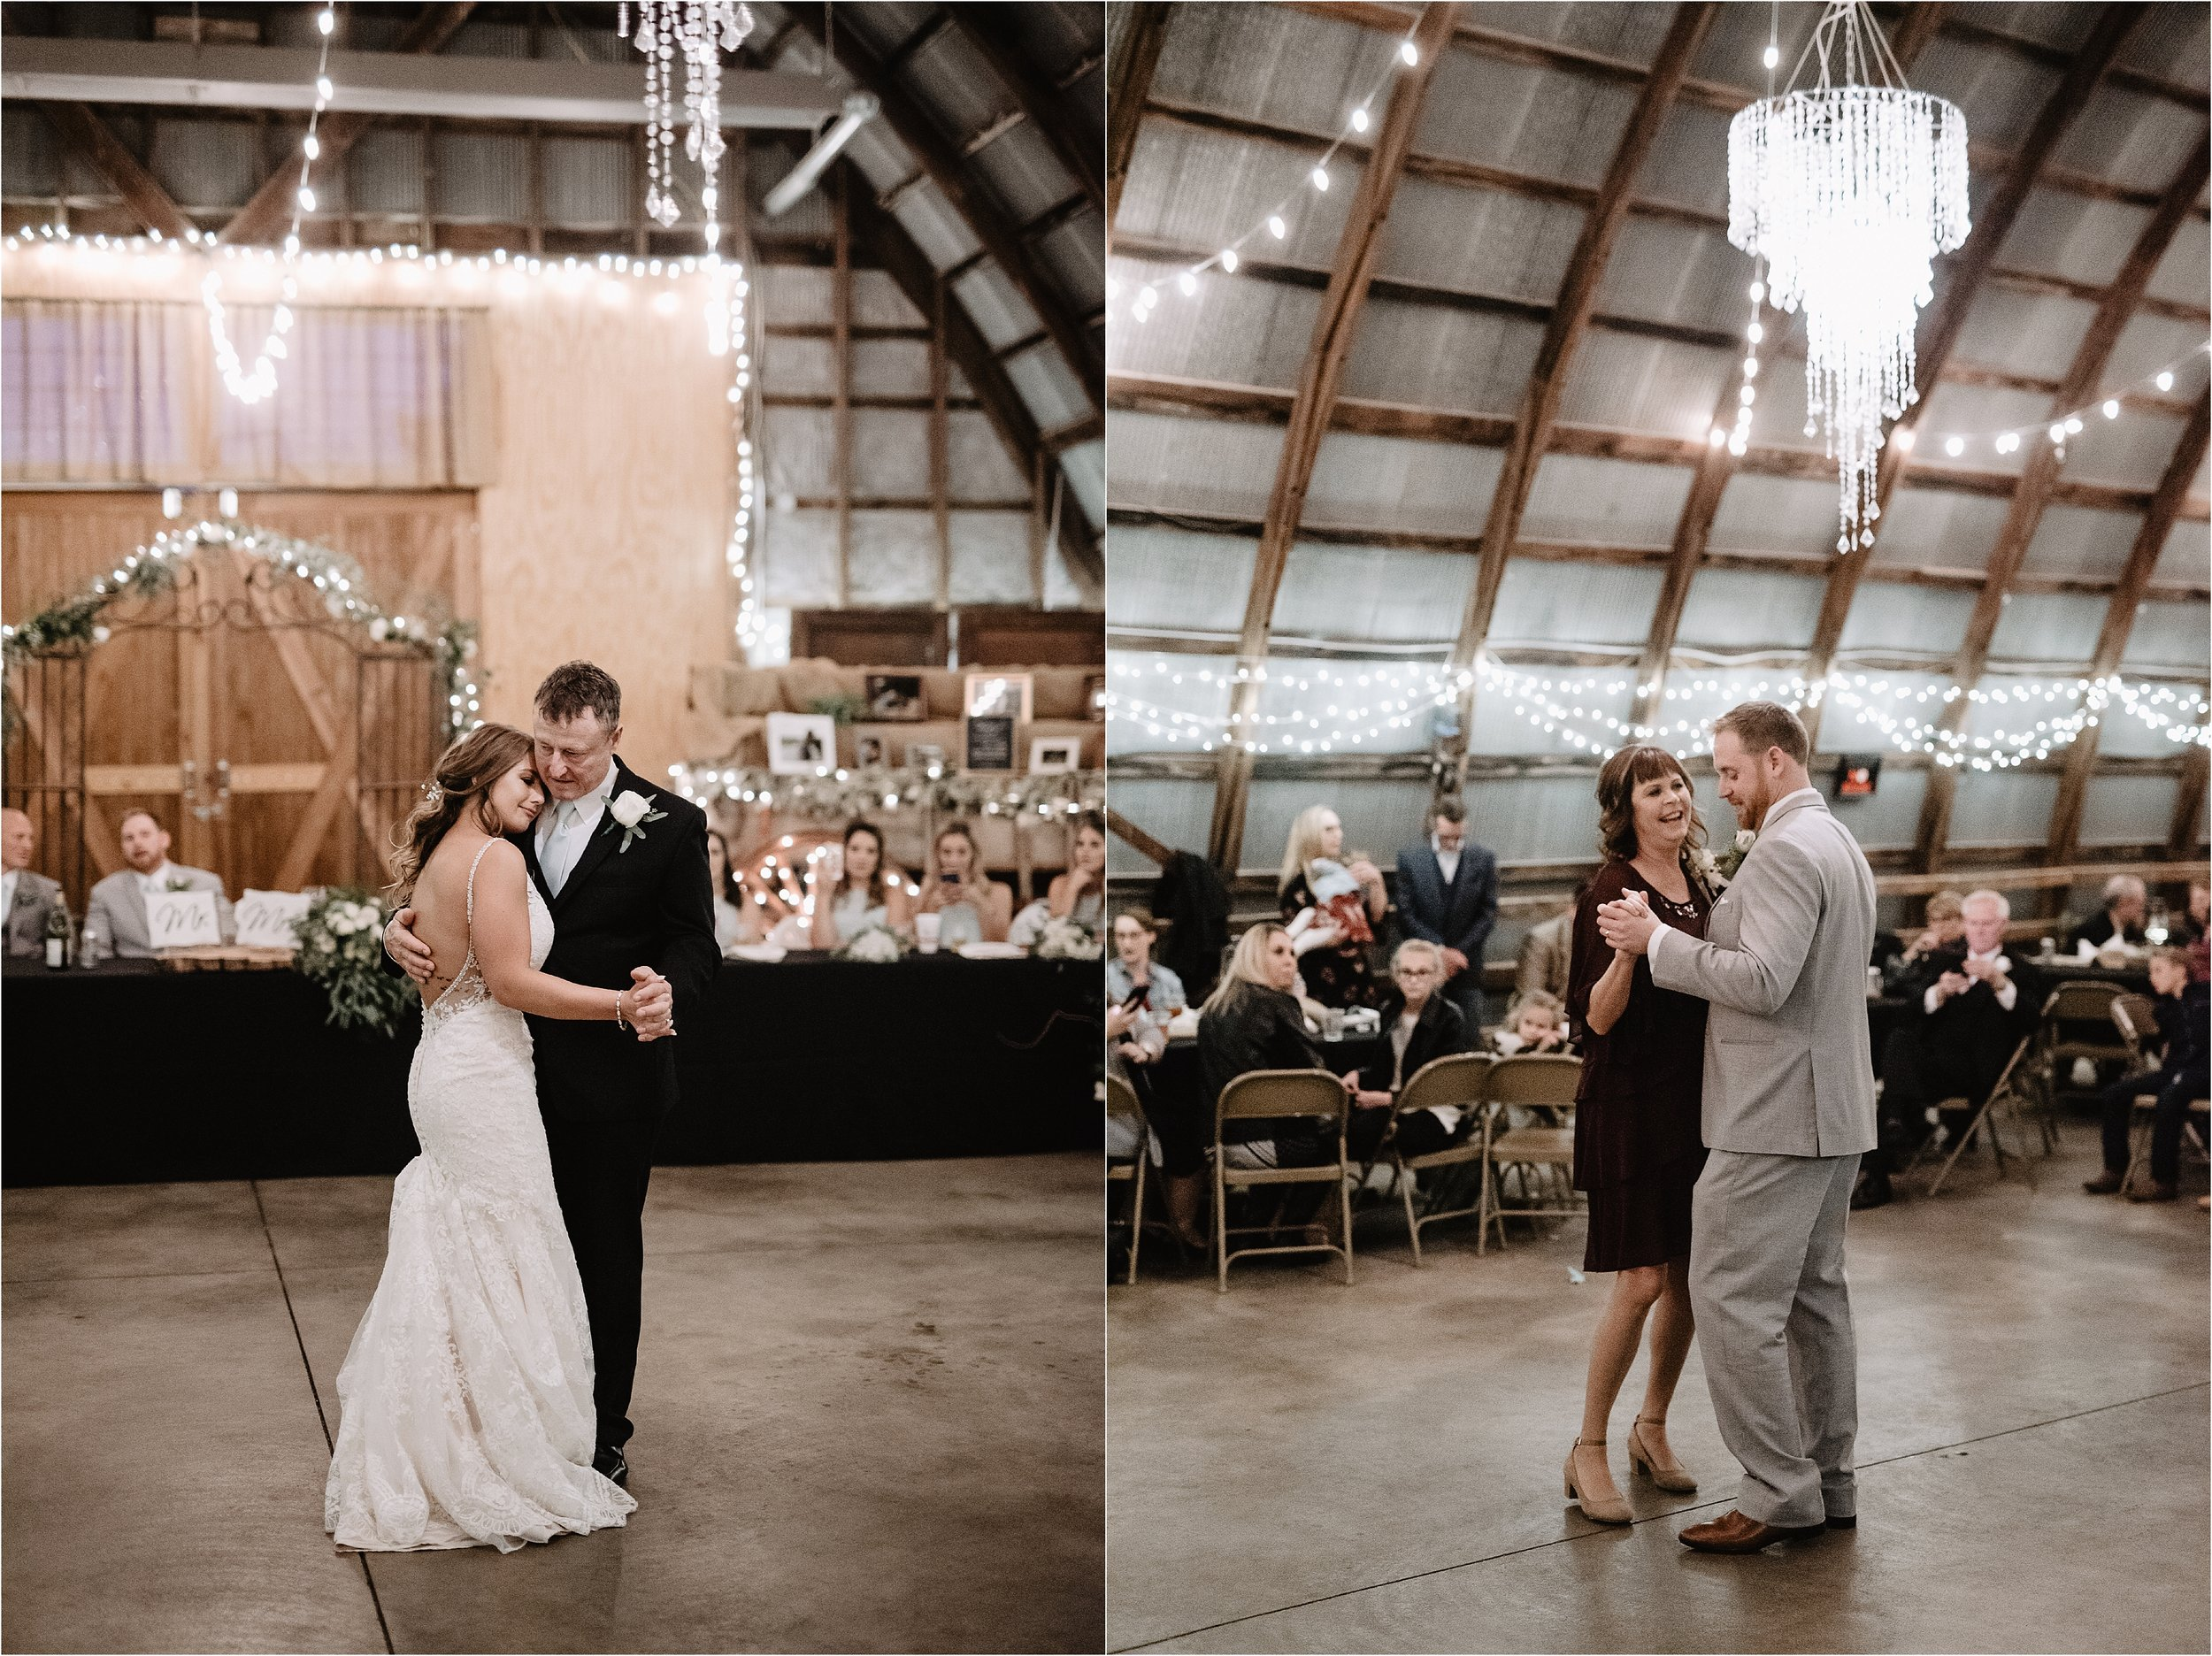 Fulton Valley Farms Wedding, Abby Bindrum & Jordan Sroufe, Wichita Wedding Photographer-101.jpg